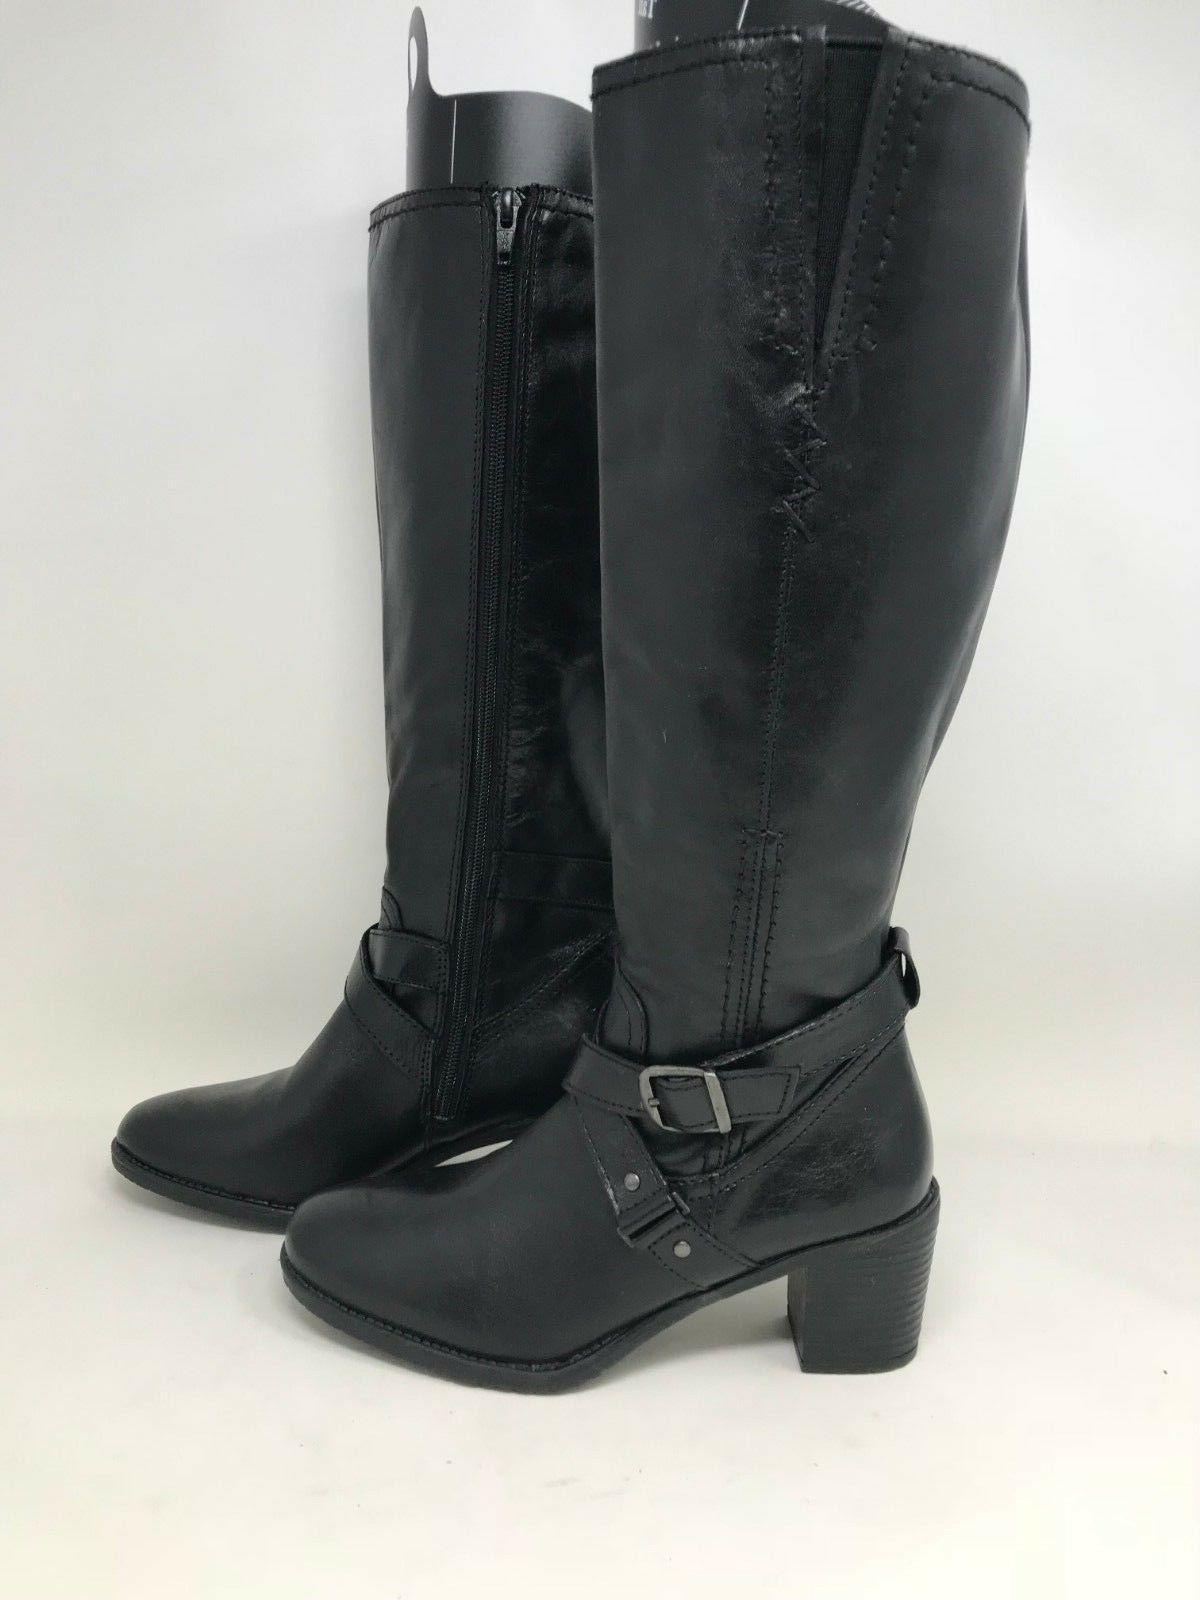 New! Women's Skechers 48498 Knee High Zipper Boots - Black B